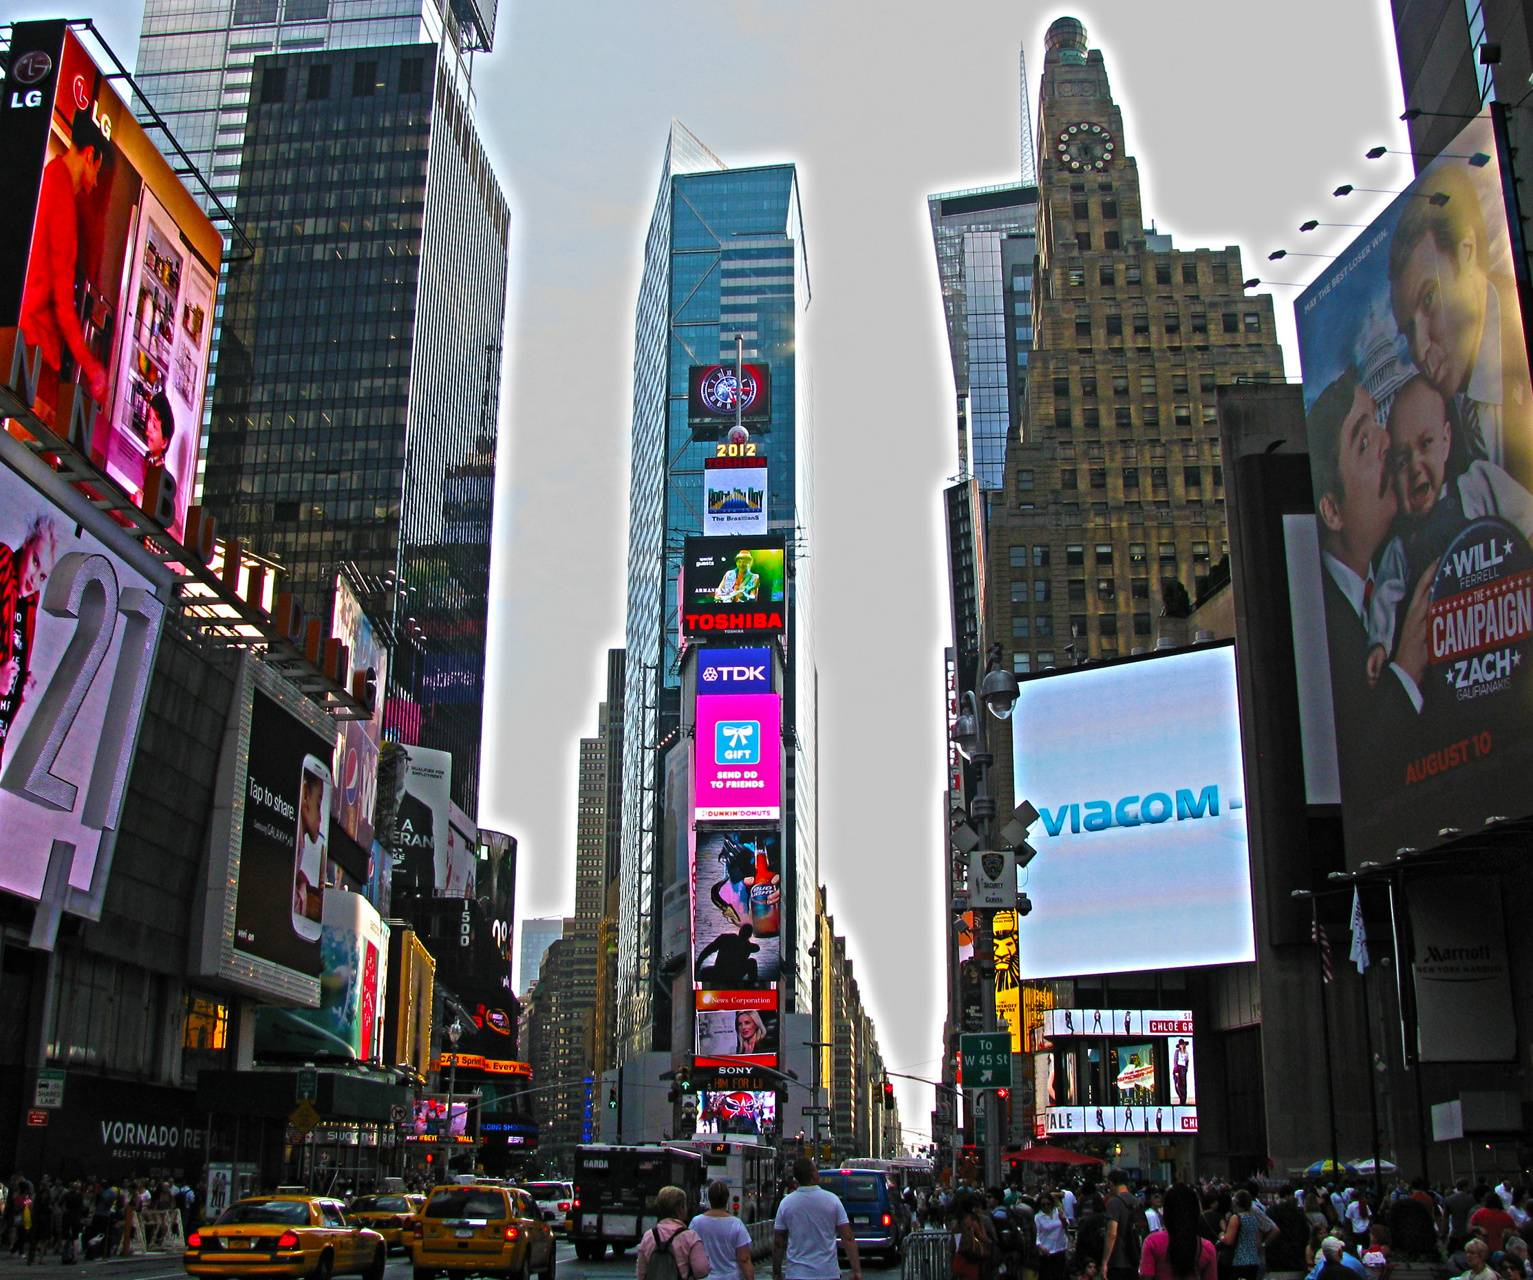 Time Square Wallpaper By Naskomahleliev 5f Free On Zedge